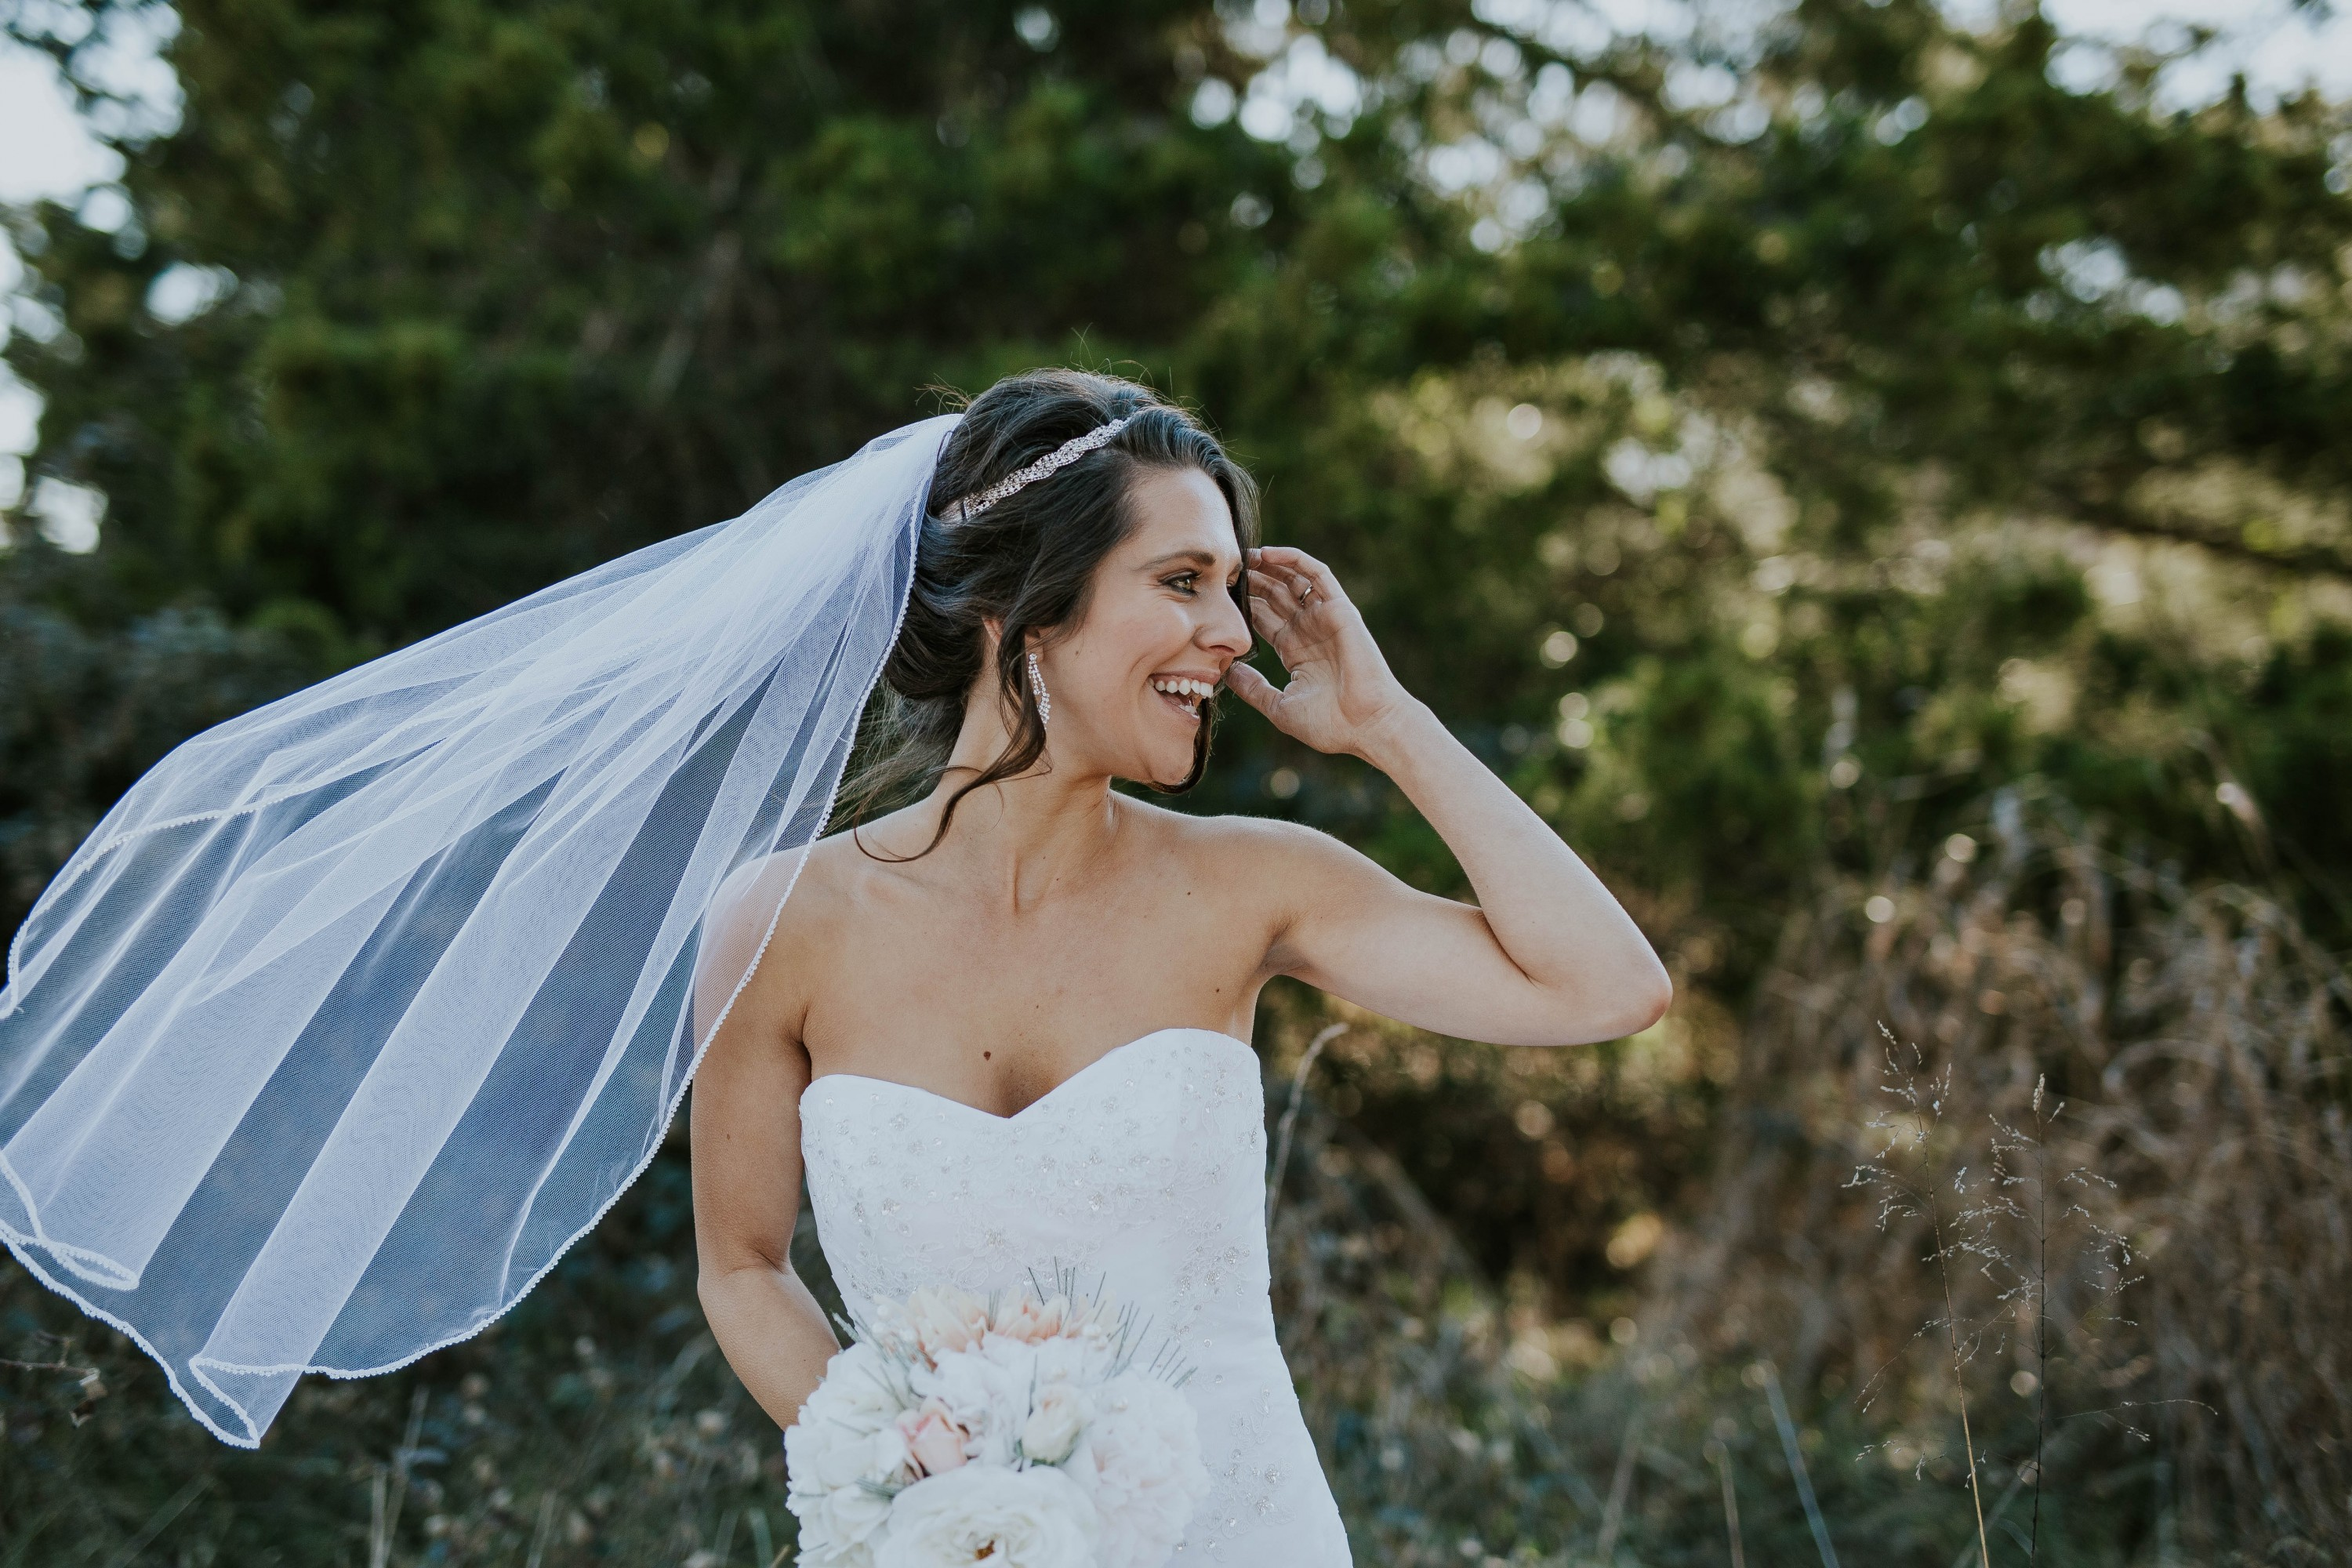 Boob top wedding dresses